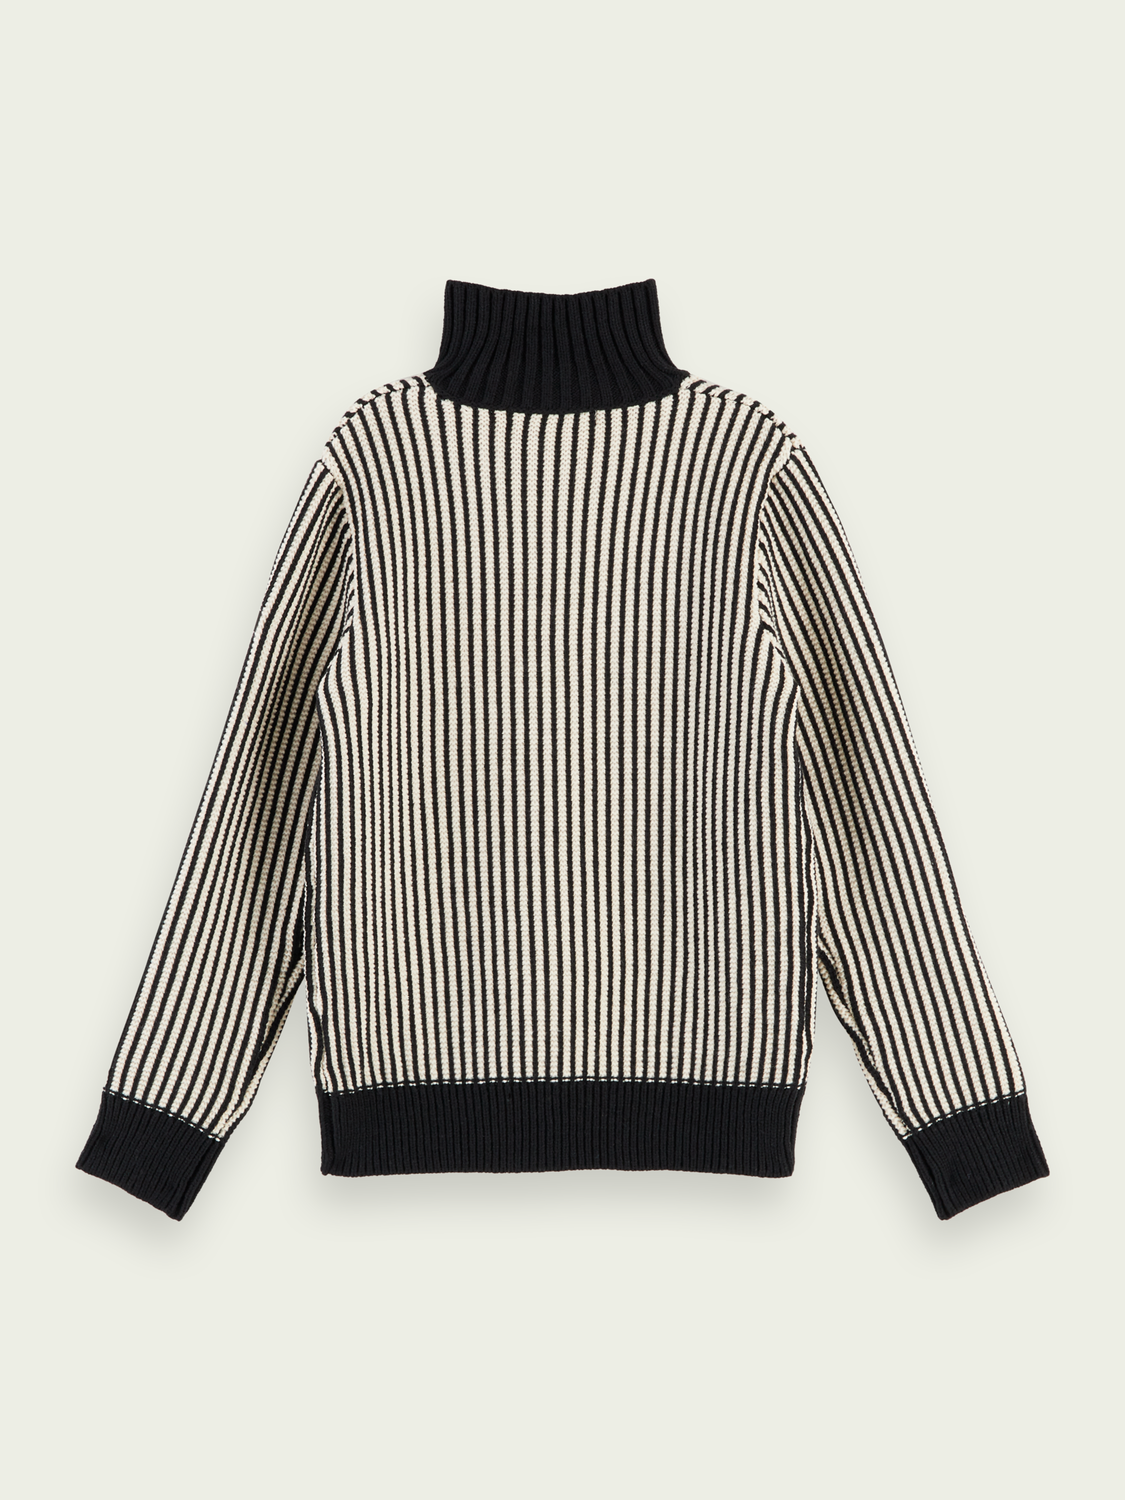 Kids Half-zip turtleneck pullover